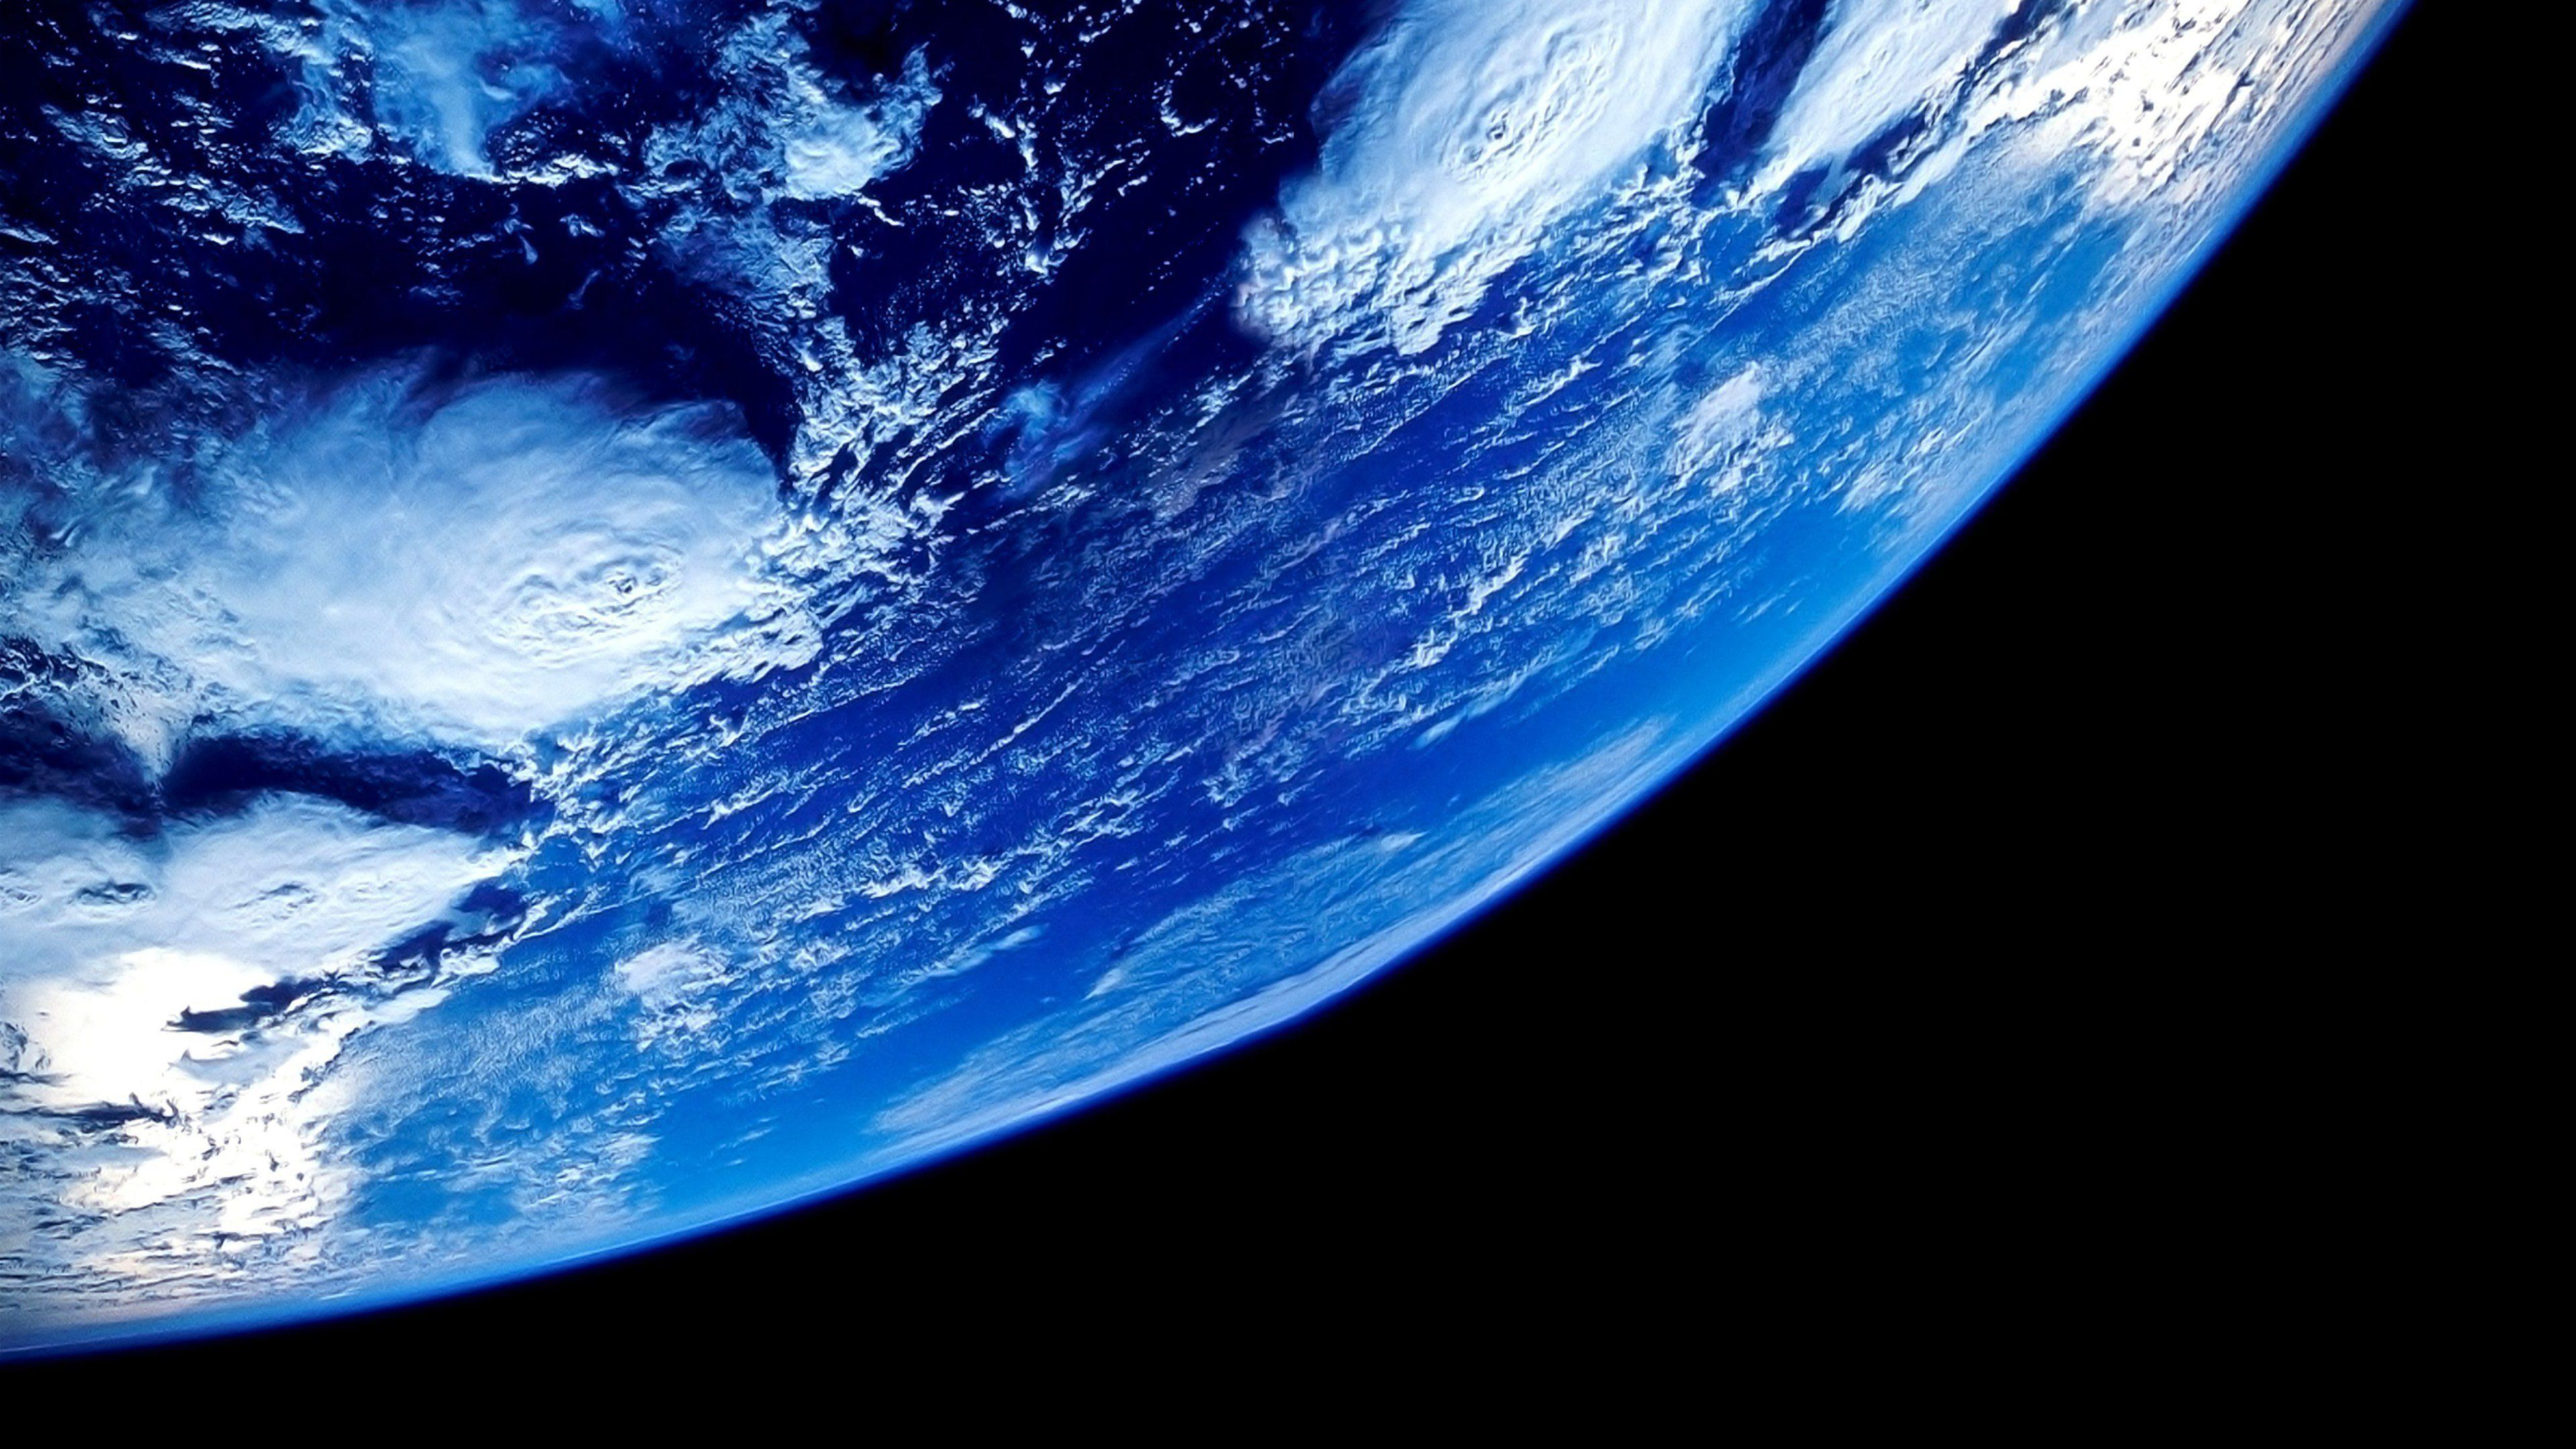 Universo 4k Wallpaper Earth Earth From Space Planets Wallpaper